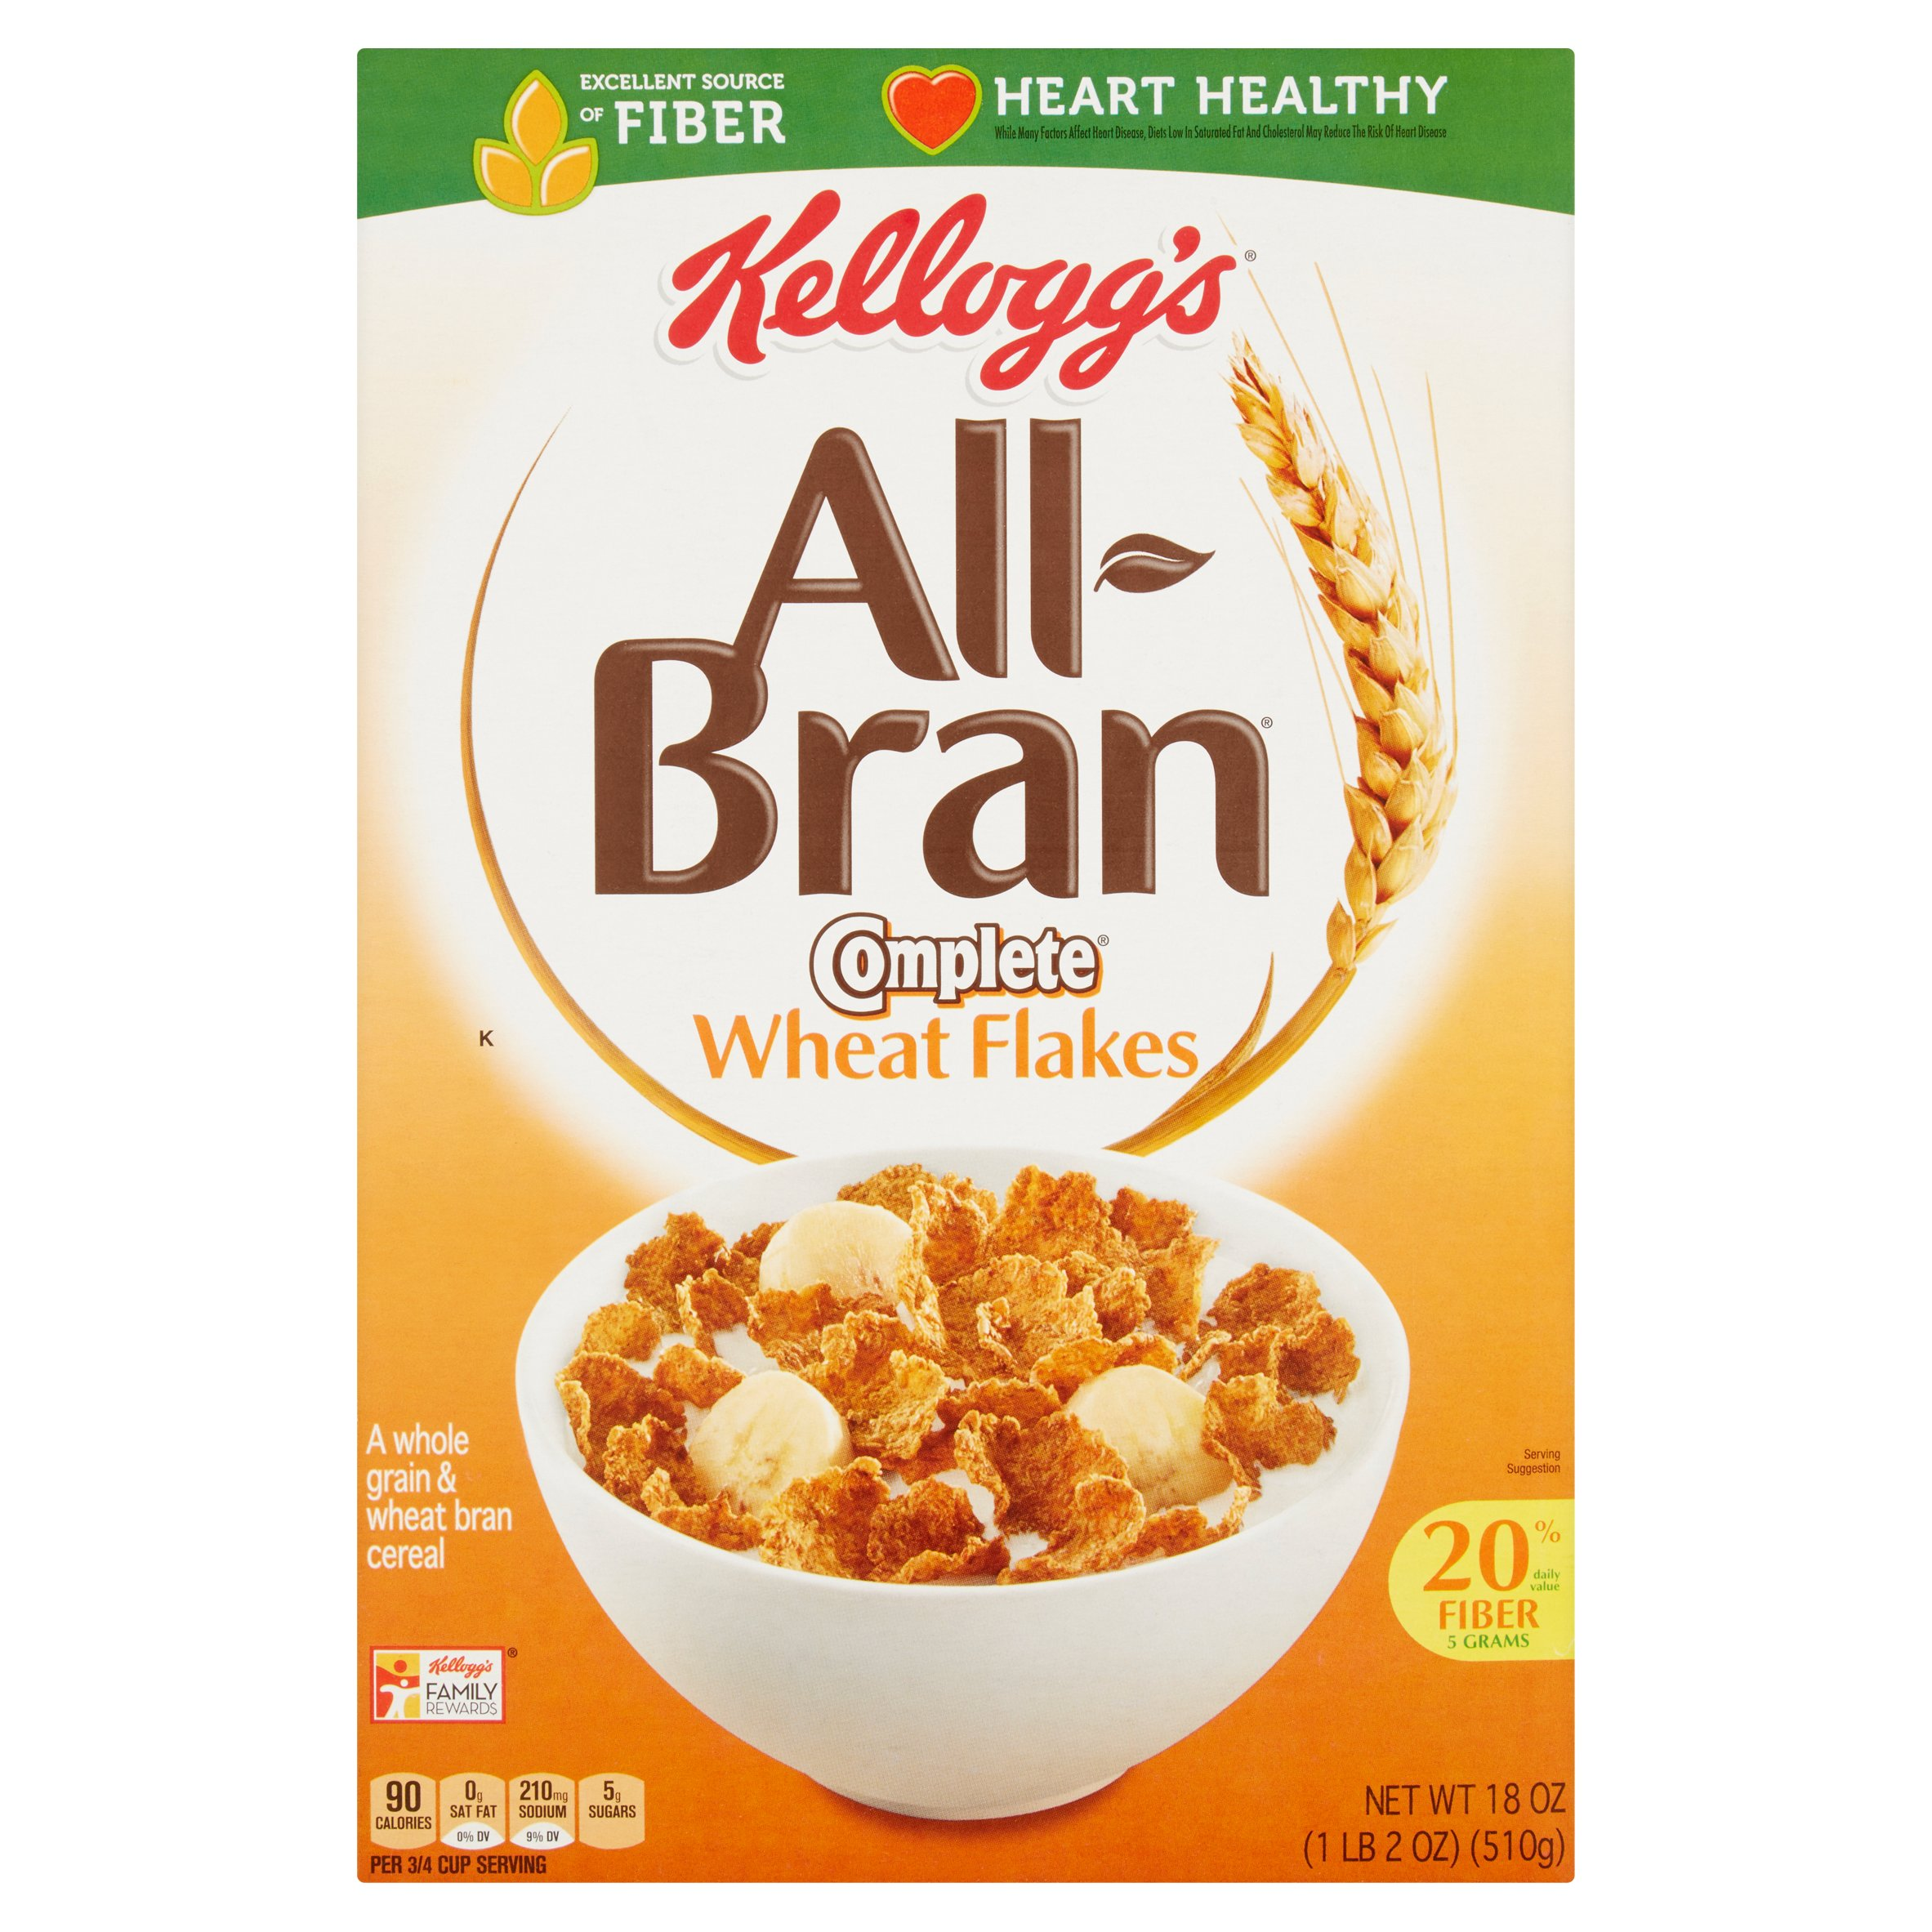 Kellogg's All-Bran Complete Wheat Flakes, 18 oz